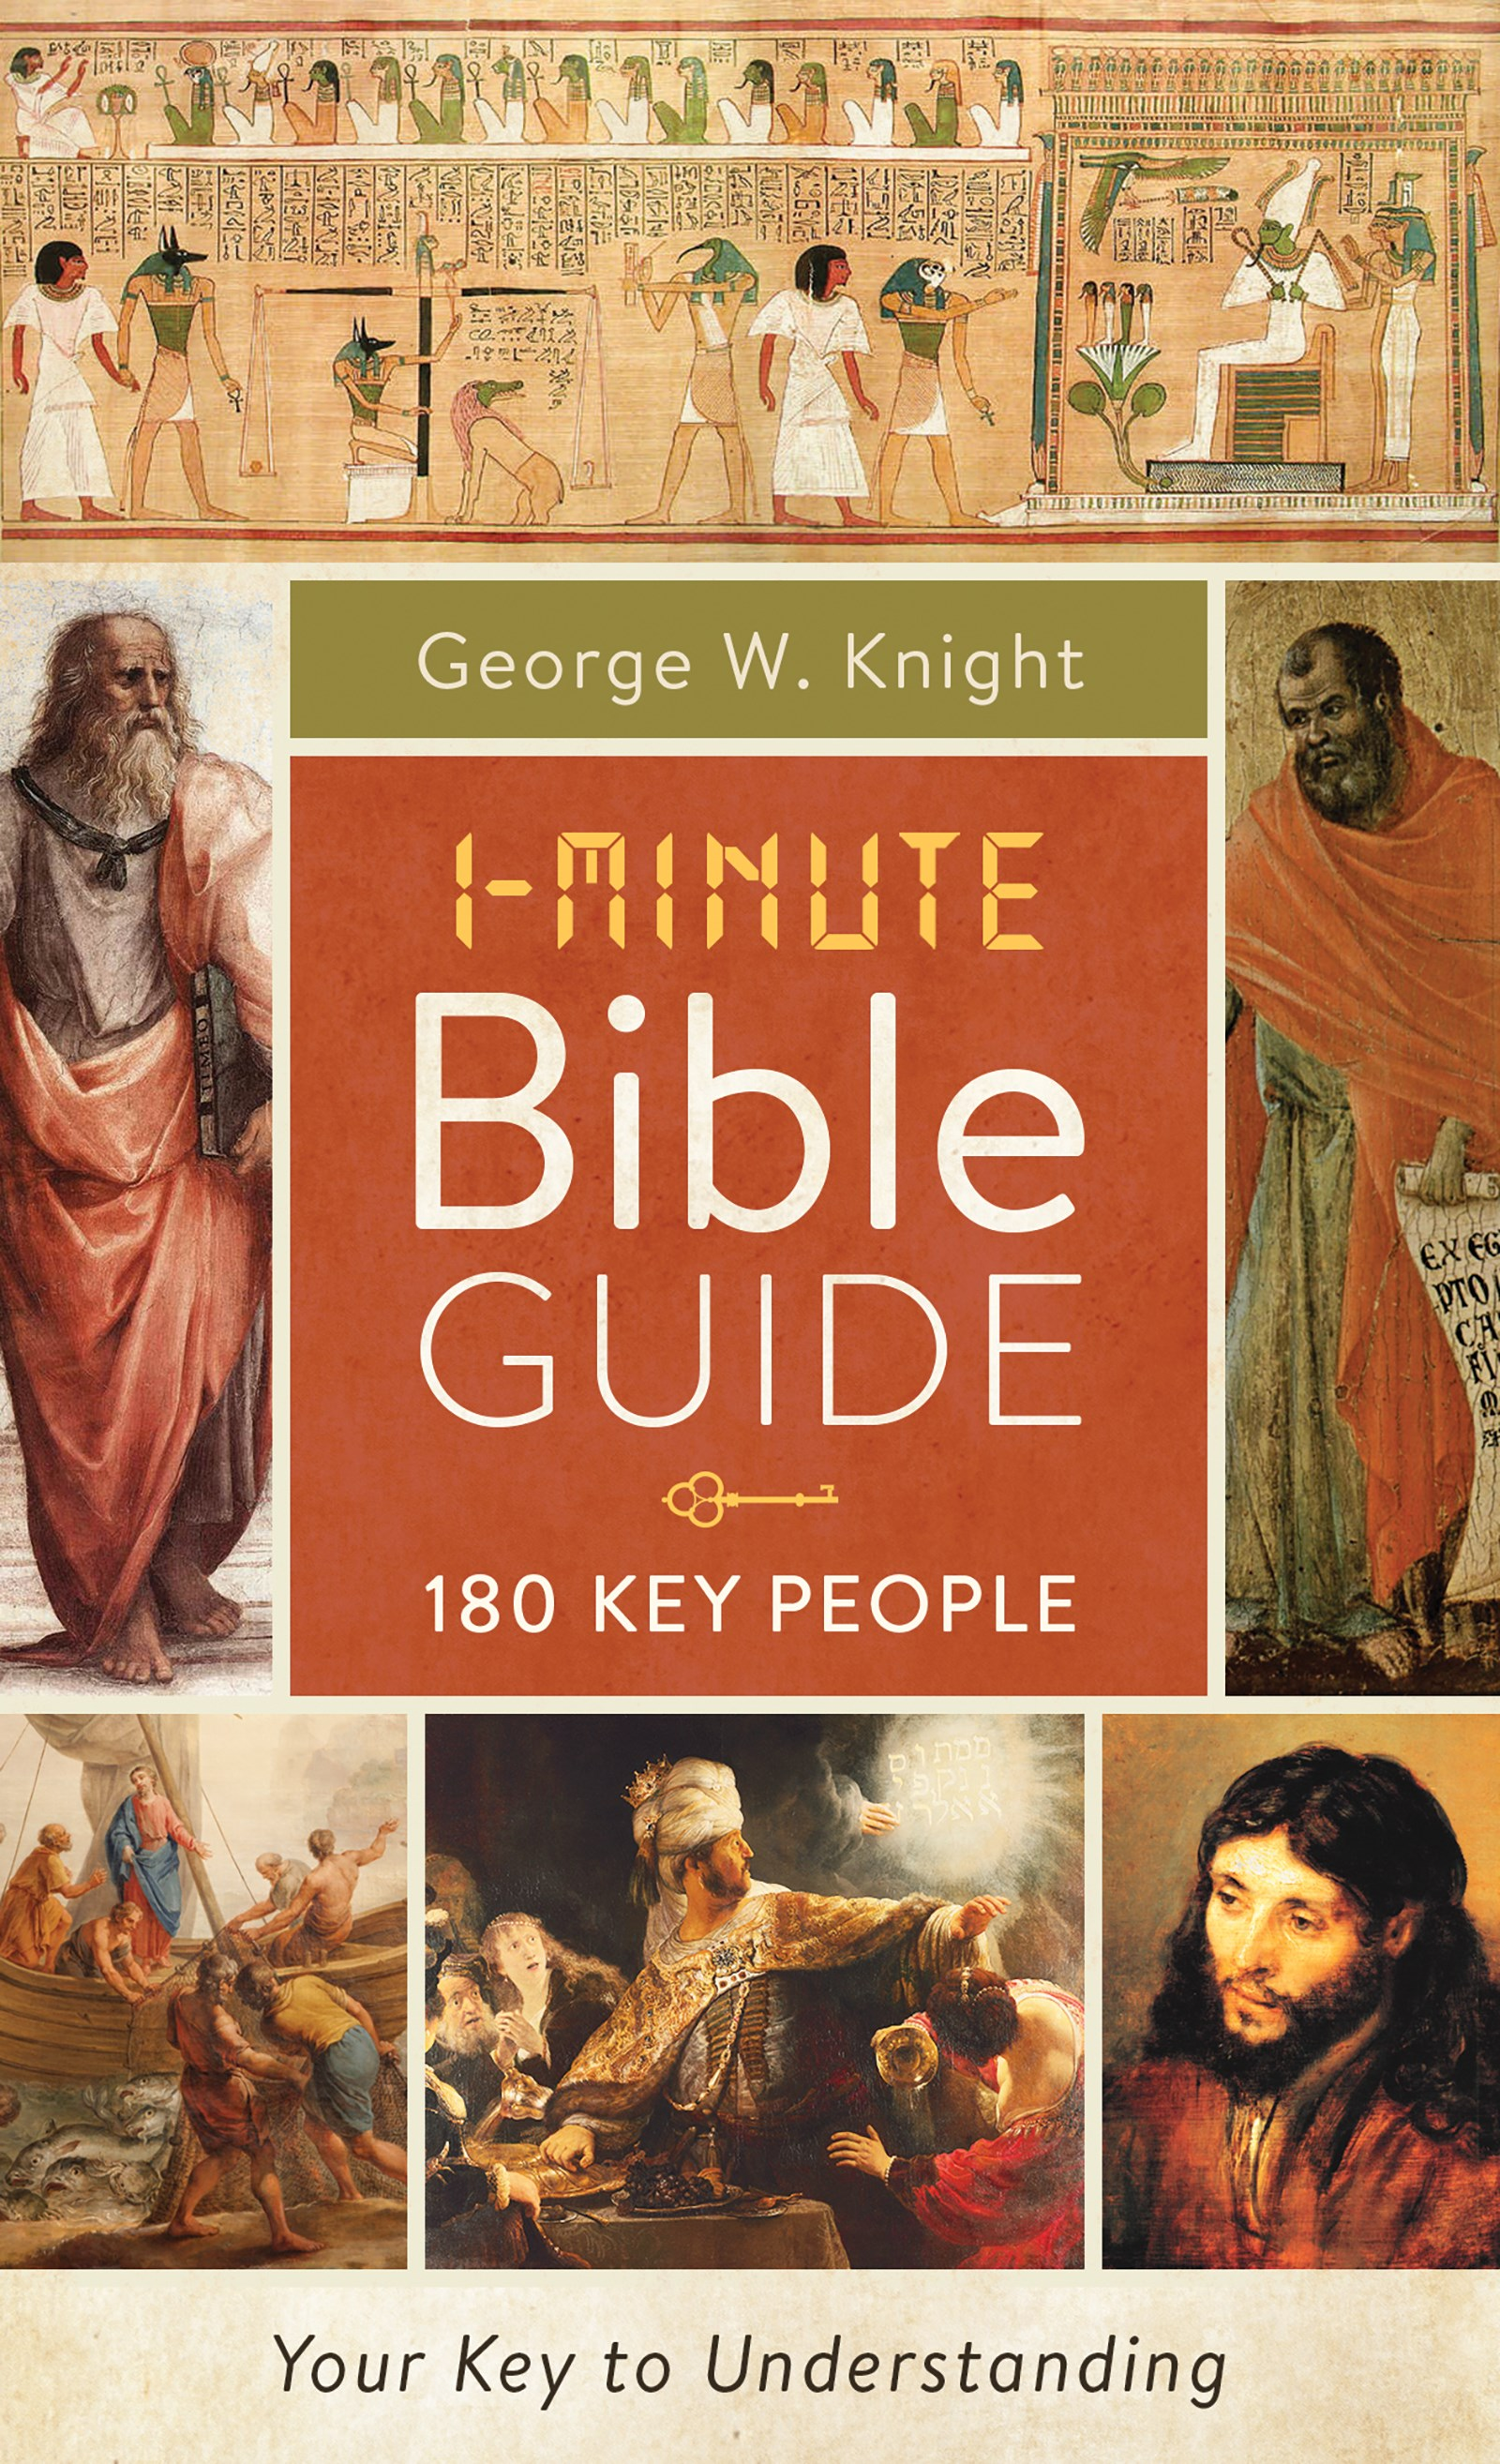 1-Minute Bible Guide: 180 Key People